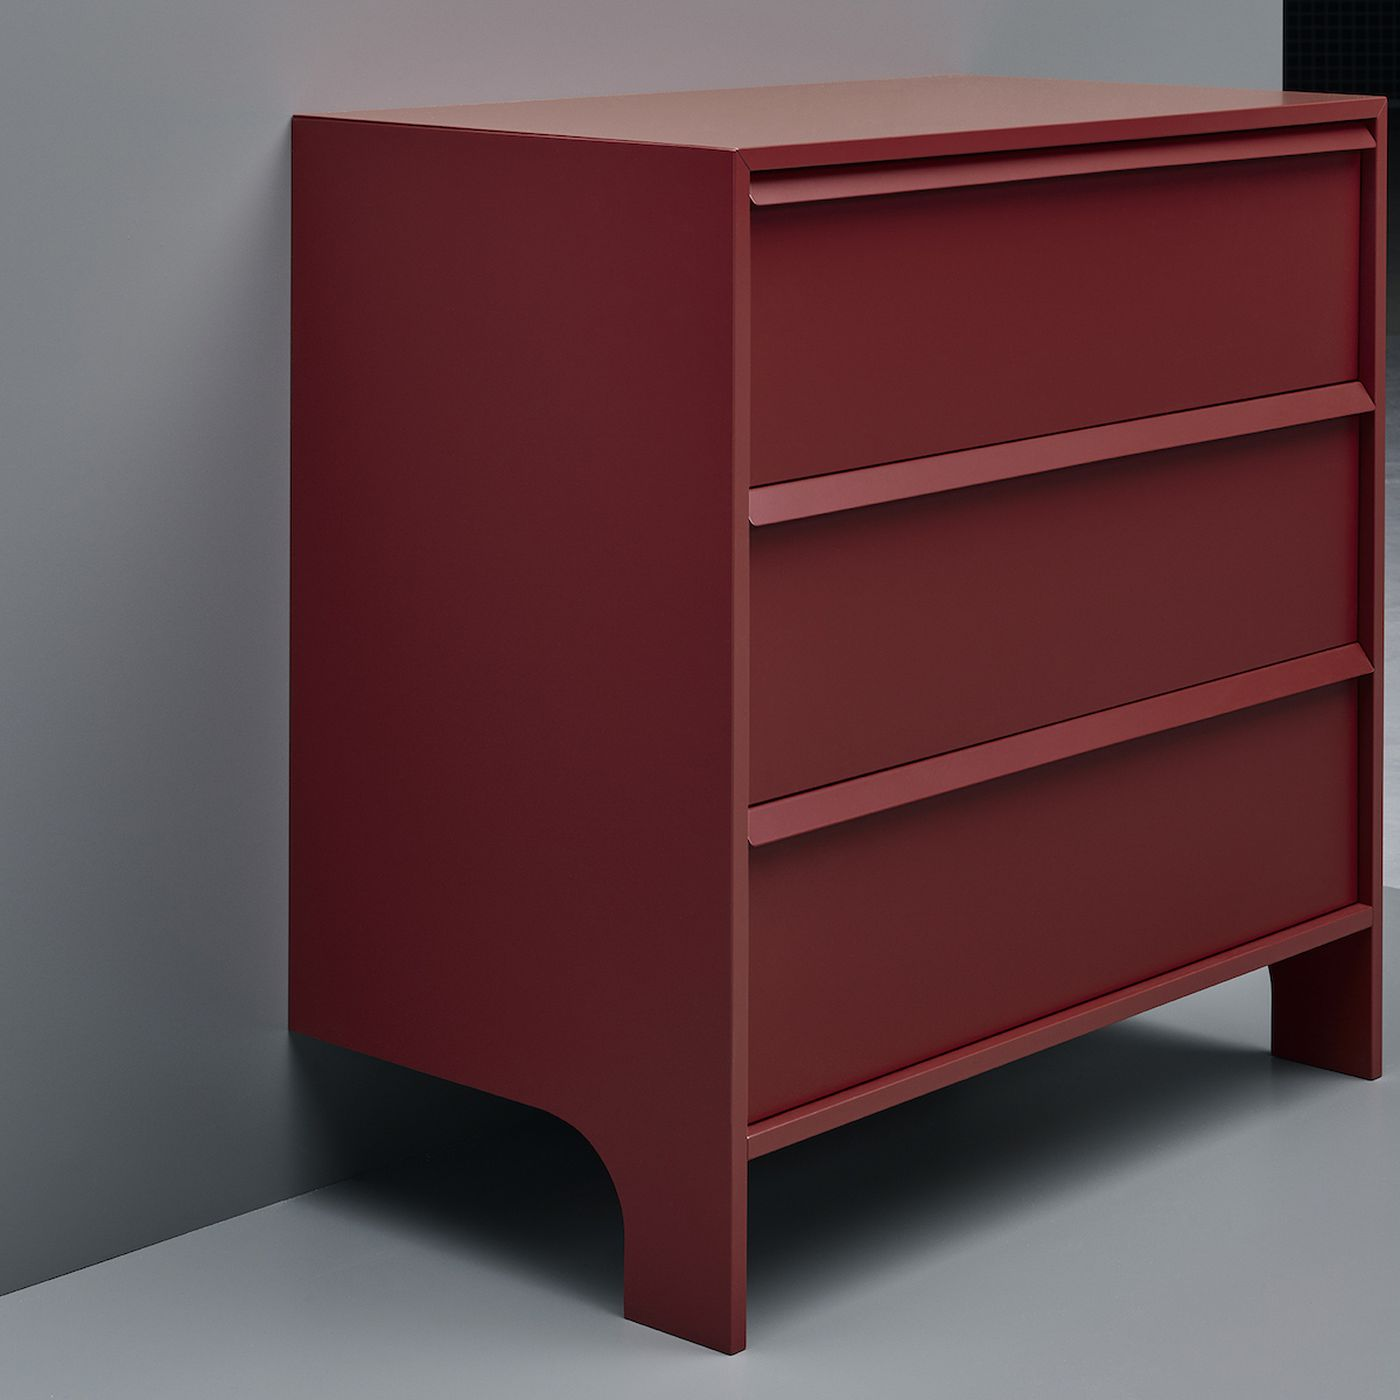 Ikea S Glesvar Dressers Are Designed For Stability Curbed